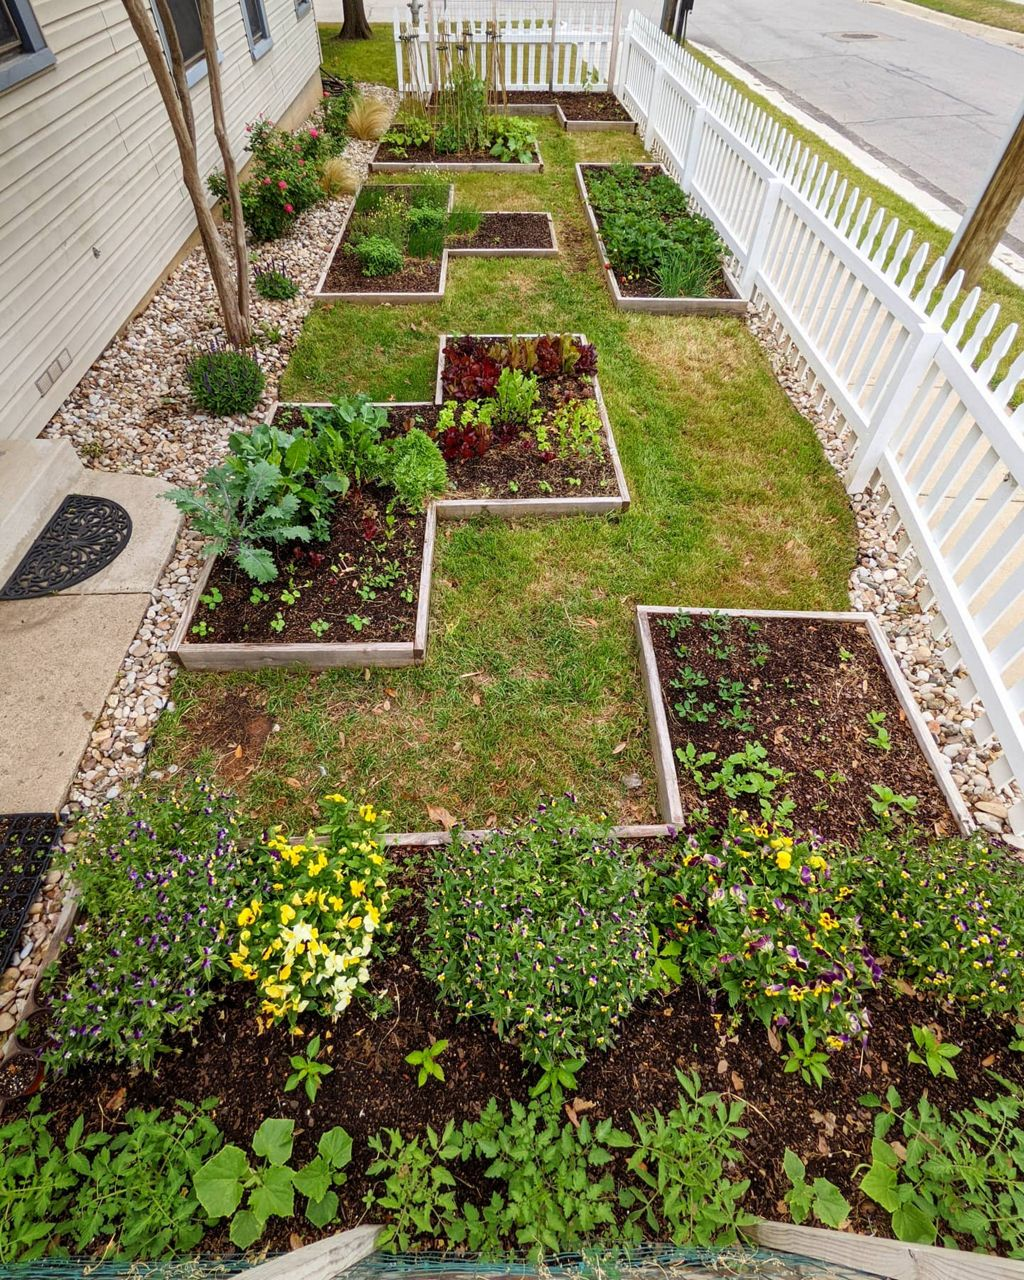 Pictured are the six planters built by Nathan Coughey in the front yard of his family's home in Fort Worth, Texas. (Courtesy: Tara Coughey)